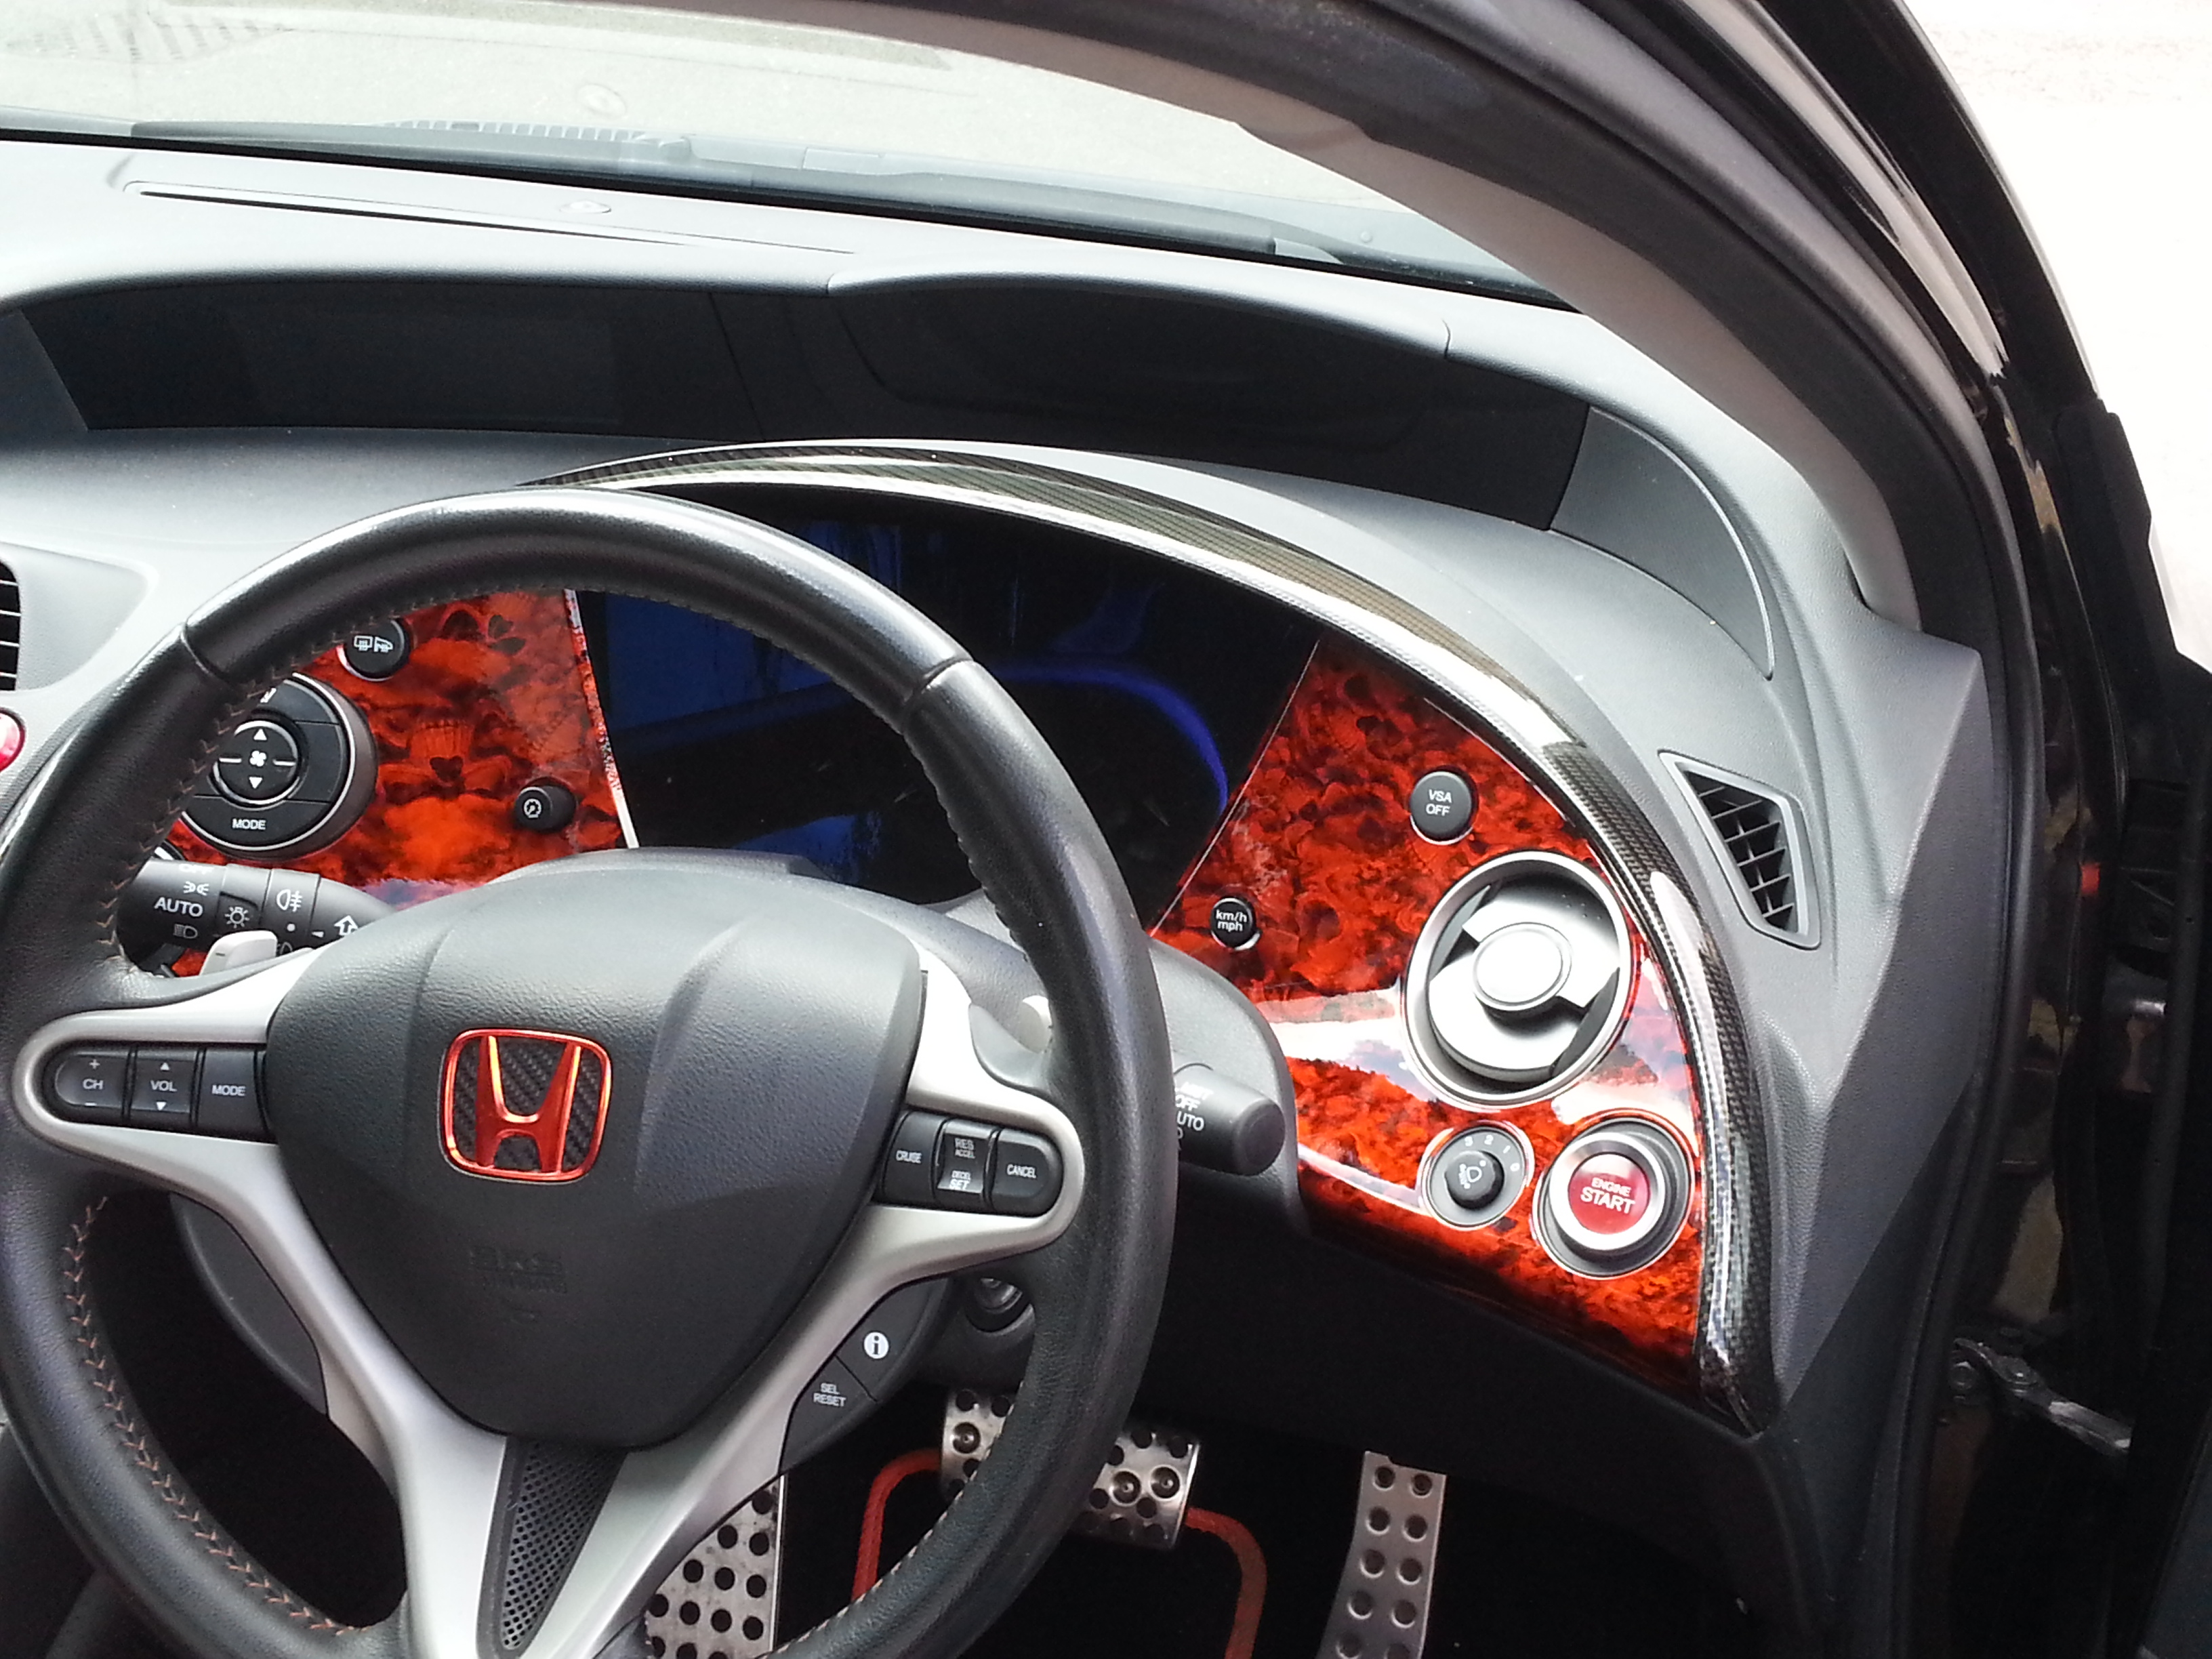 honda civic dashboard after awesome hydro dipping by wicked coatings. Black Bedroom Furniture Sets. Home Design Ideas